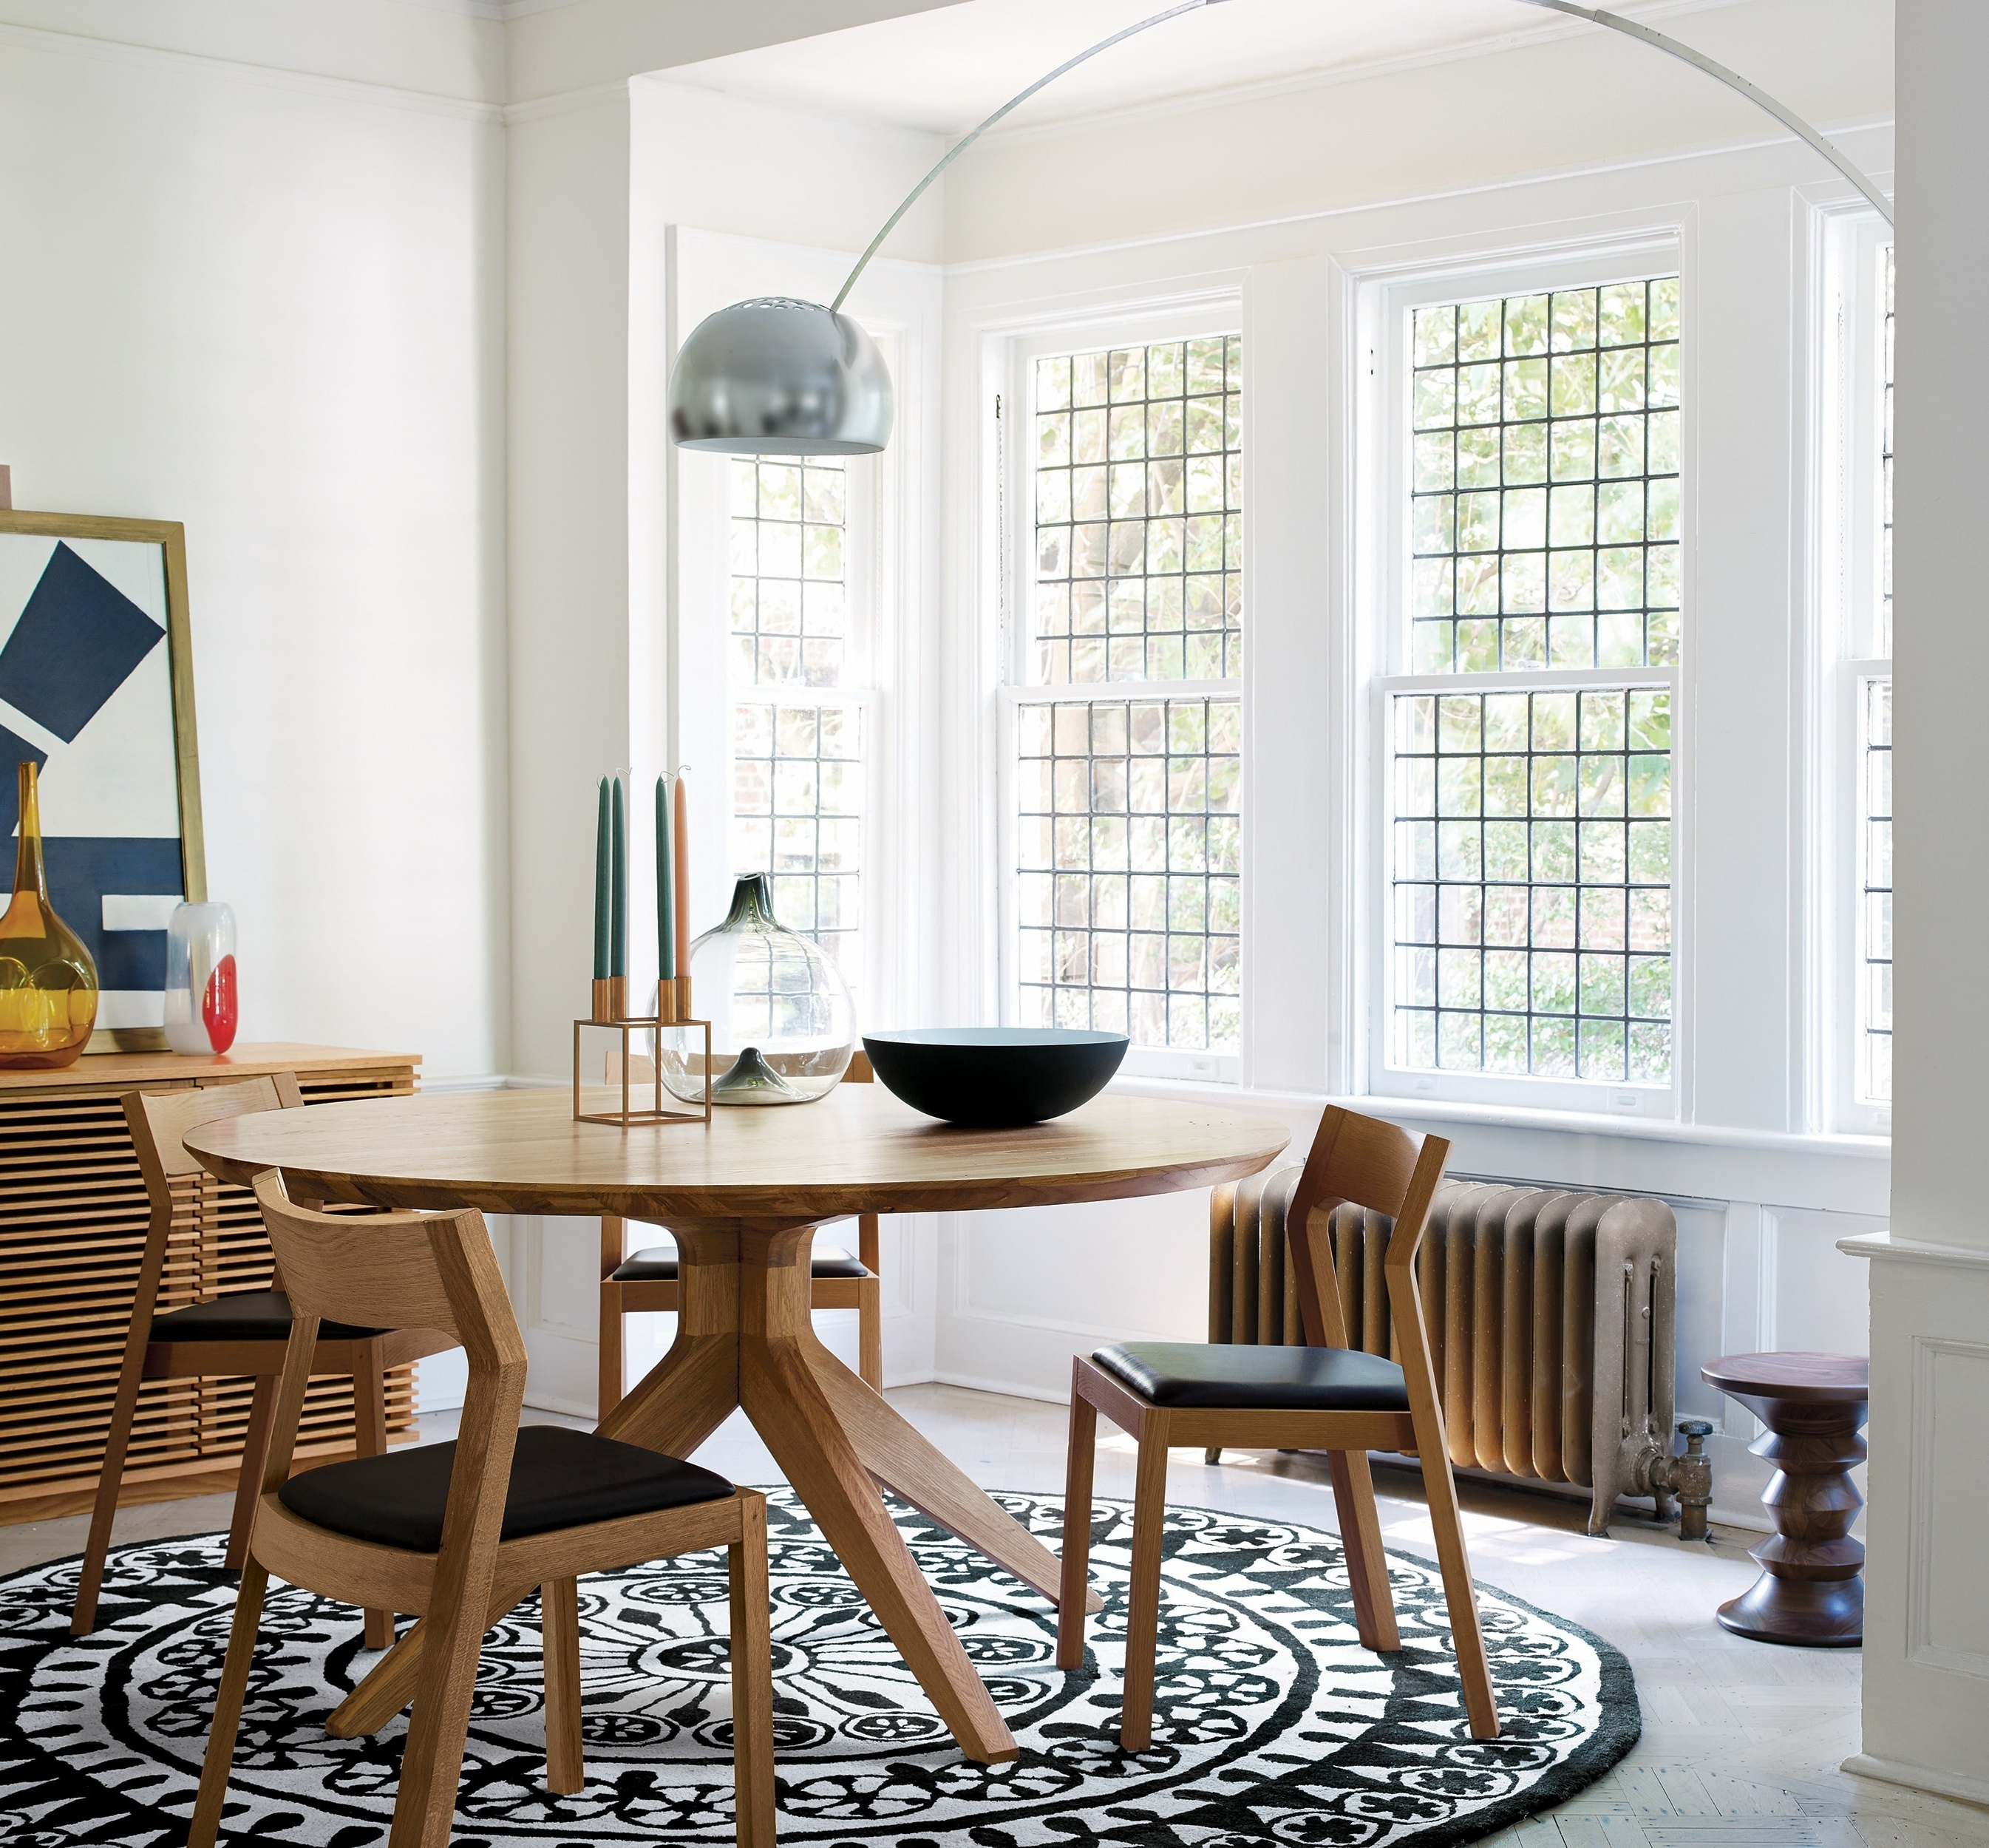 Case Furniture In Recent Oak Round Dining Tables And Chairs (View 19 of 25)